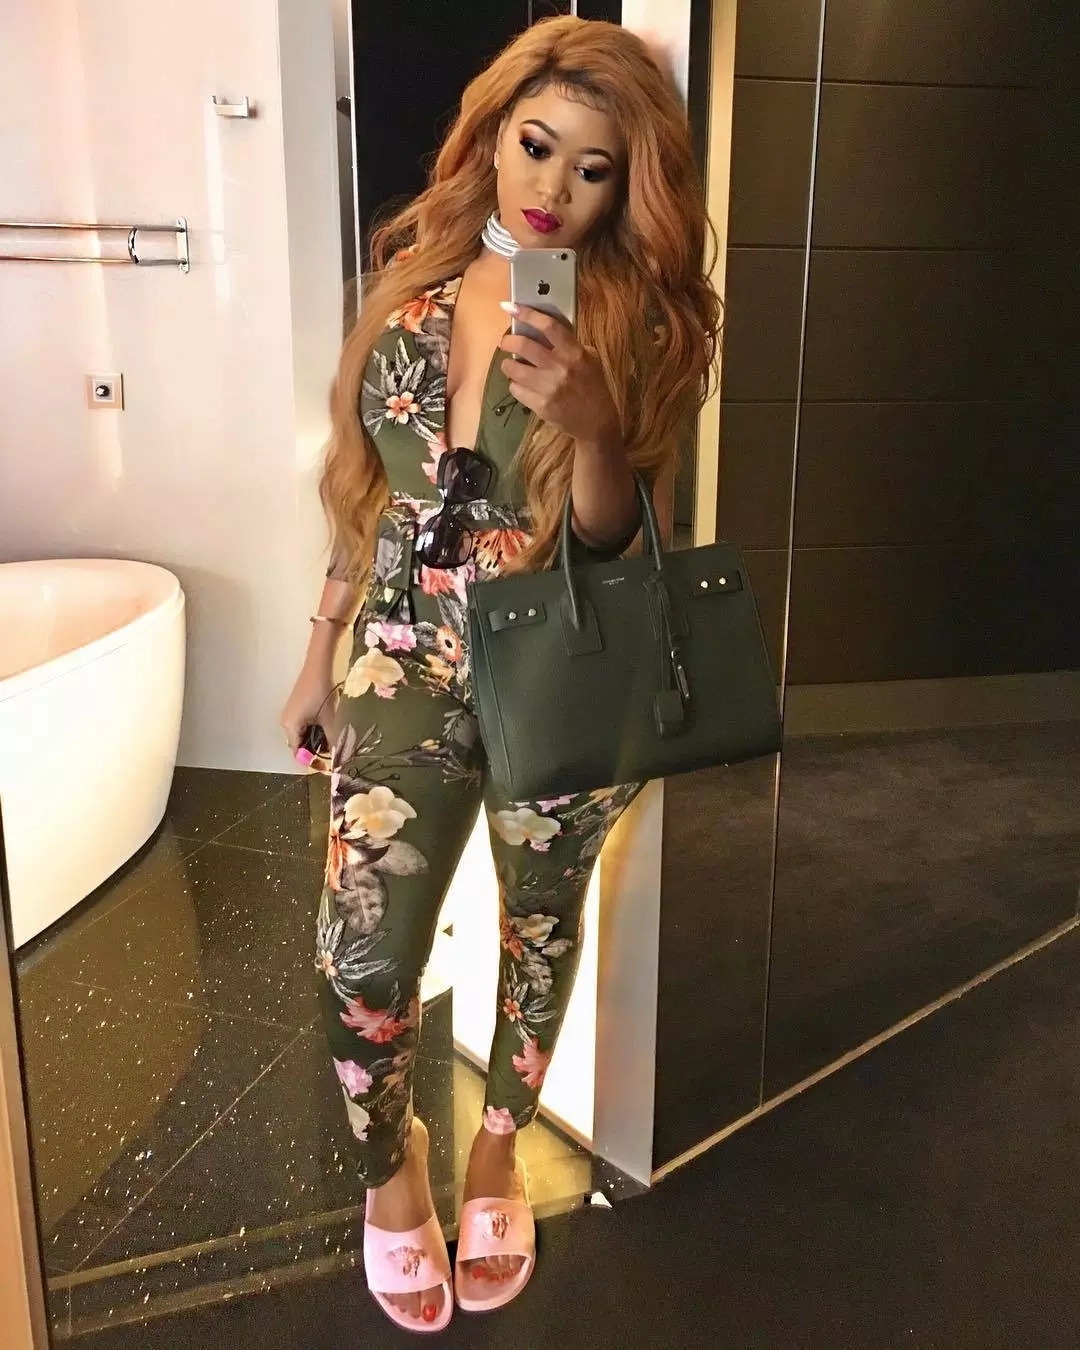 Socialite Vera Sidika removes family planning implant, ready for baby number two